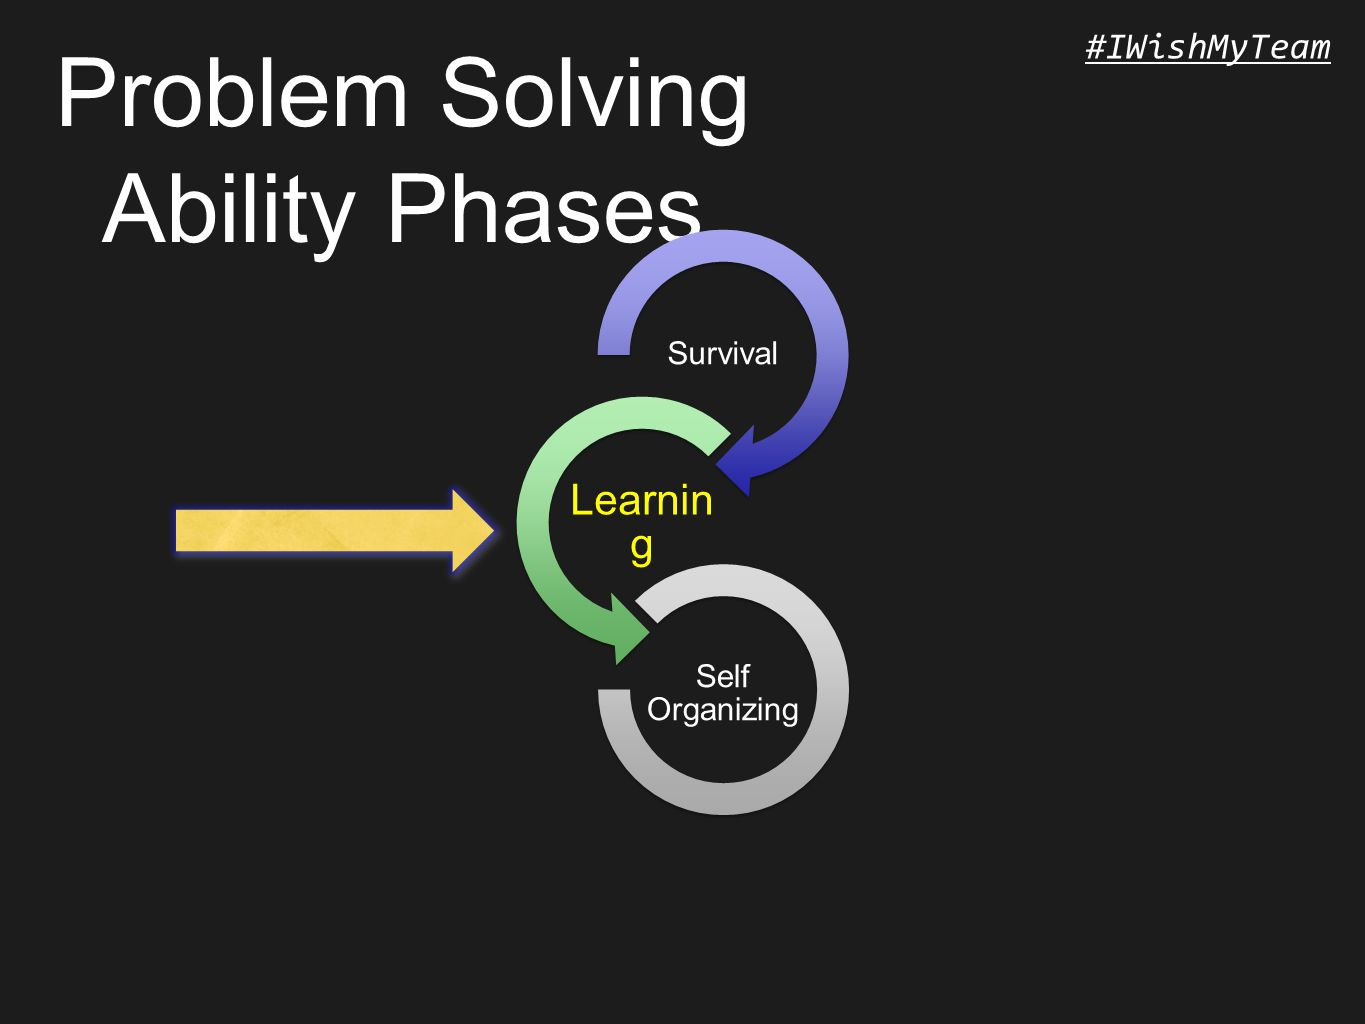 #IWishMyTeam Problem Solving Ability Phases Survival Learnin g Self Organizing